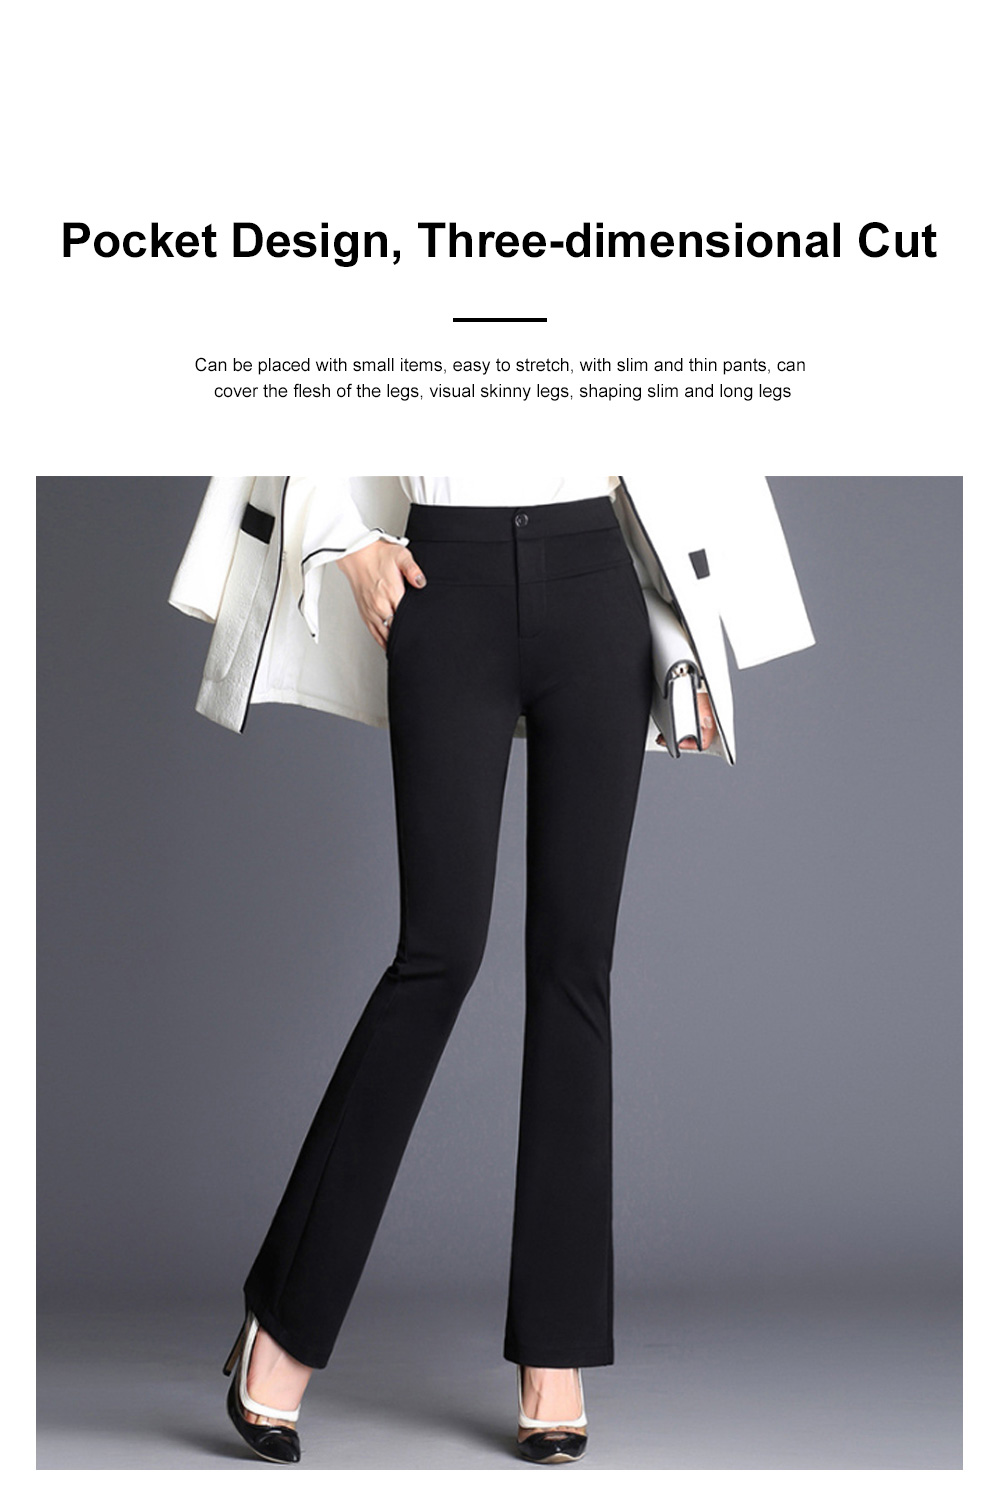 Plus Size Pants Female Casual Long Pants Ladies Office Trousers High Waist Slimming Black Straight Customized Stretch Big Size Slacks 1